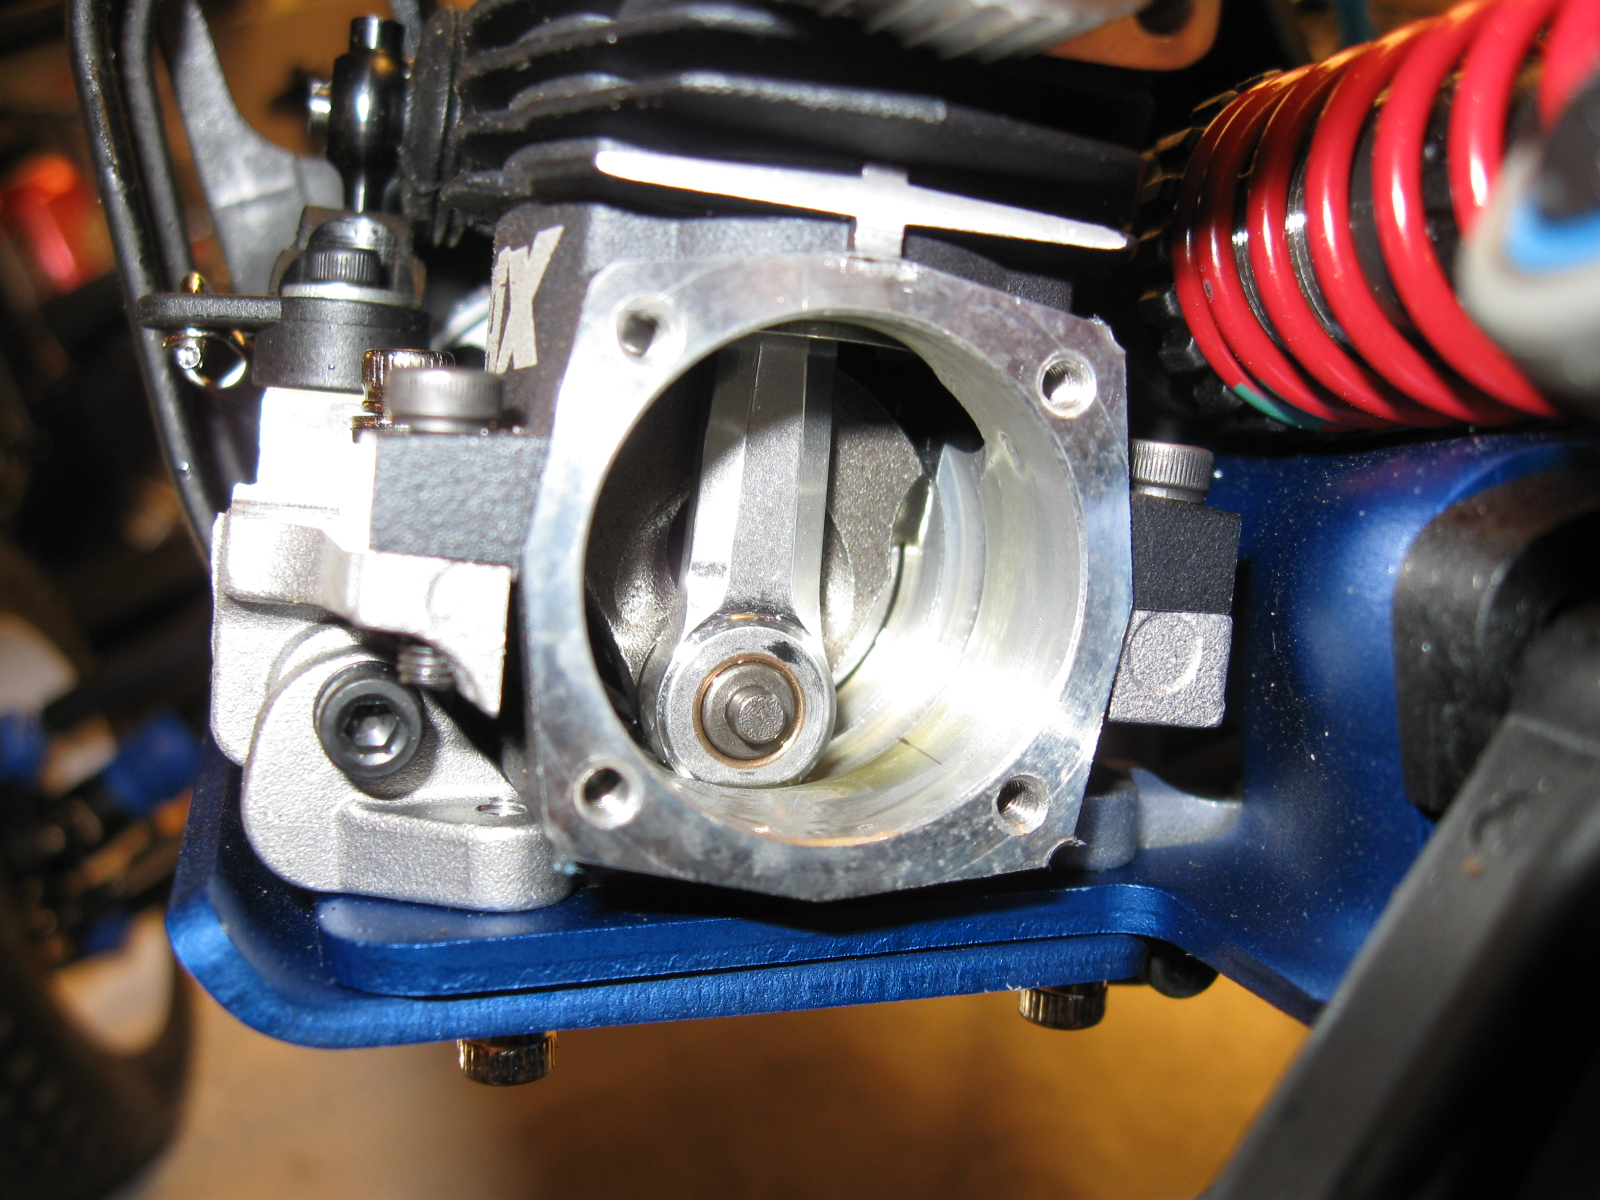 Picco introduces their new P Max 21 nitro engine for the Revo and T Maxx RCU Forums